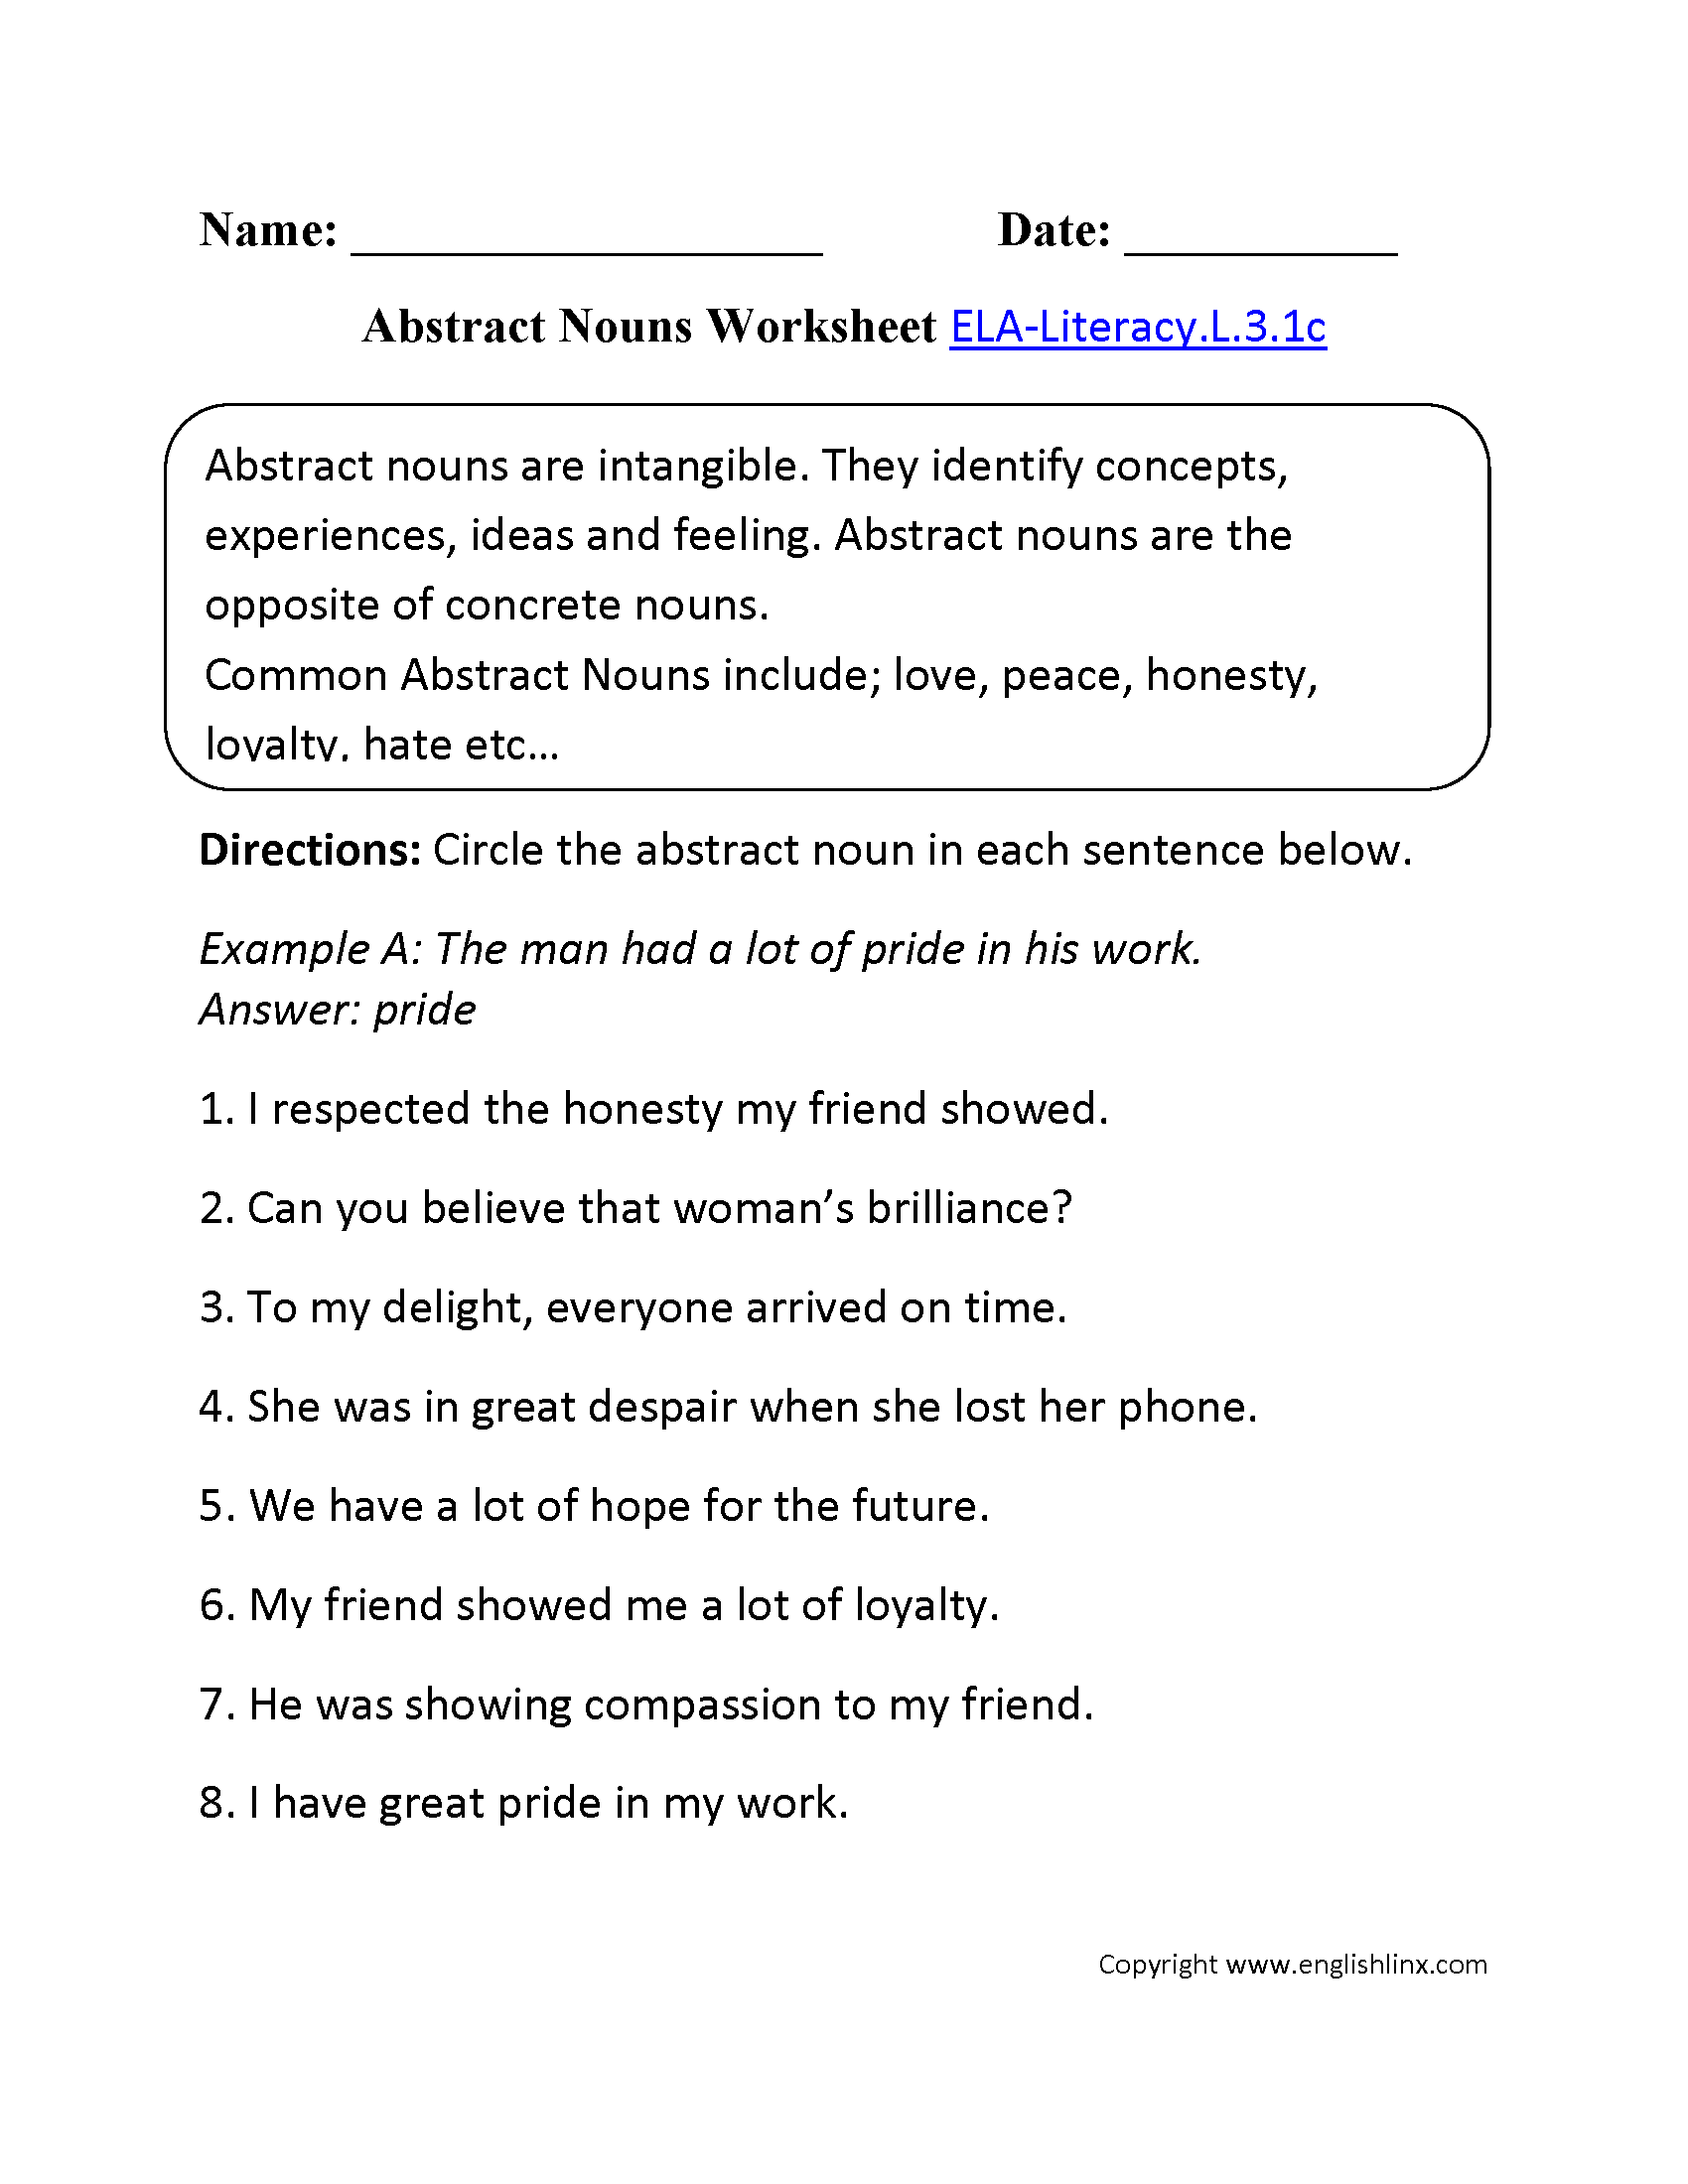 Abstract Nouns Worksheet 1 Ela Literacy L 3 1c Language